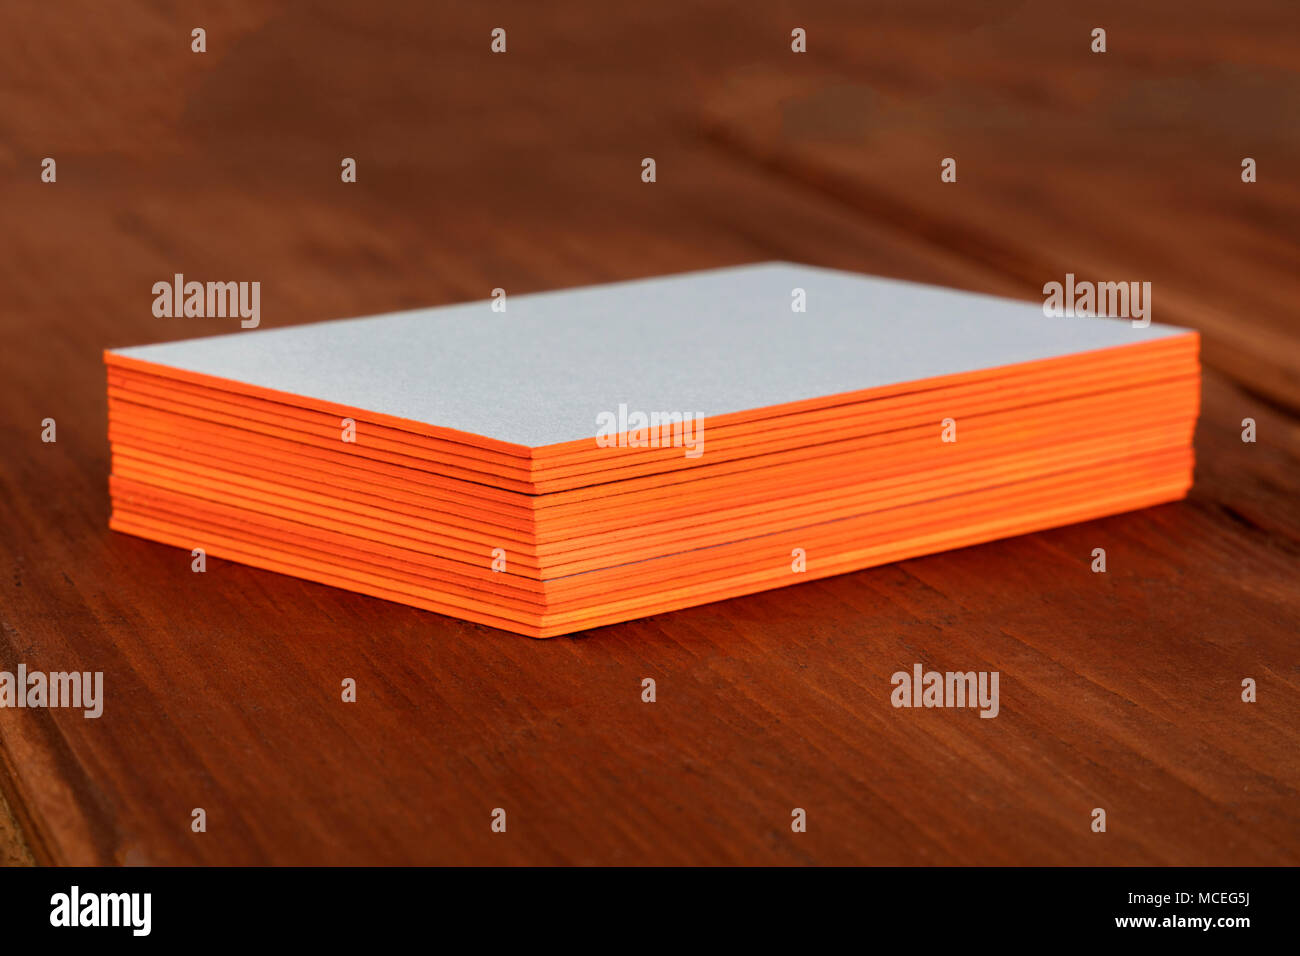 A stack of blank layered business cards with painted edges, on a ...